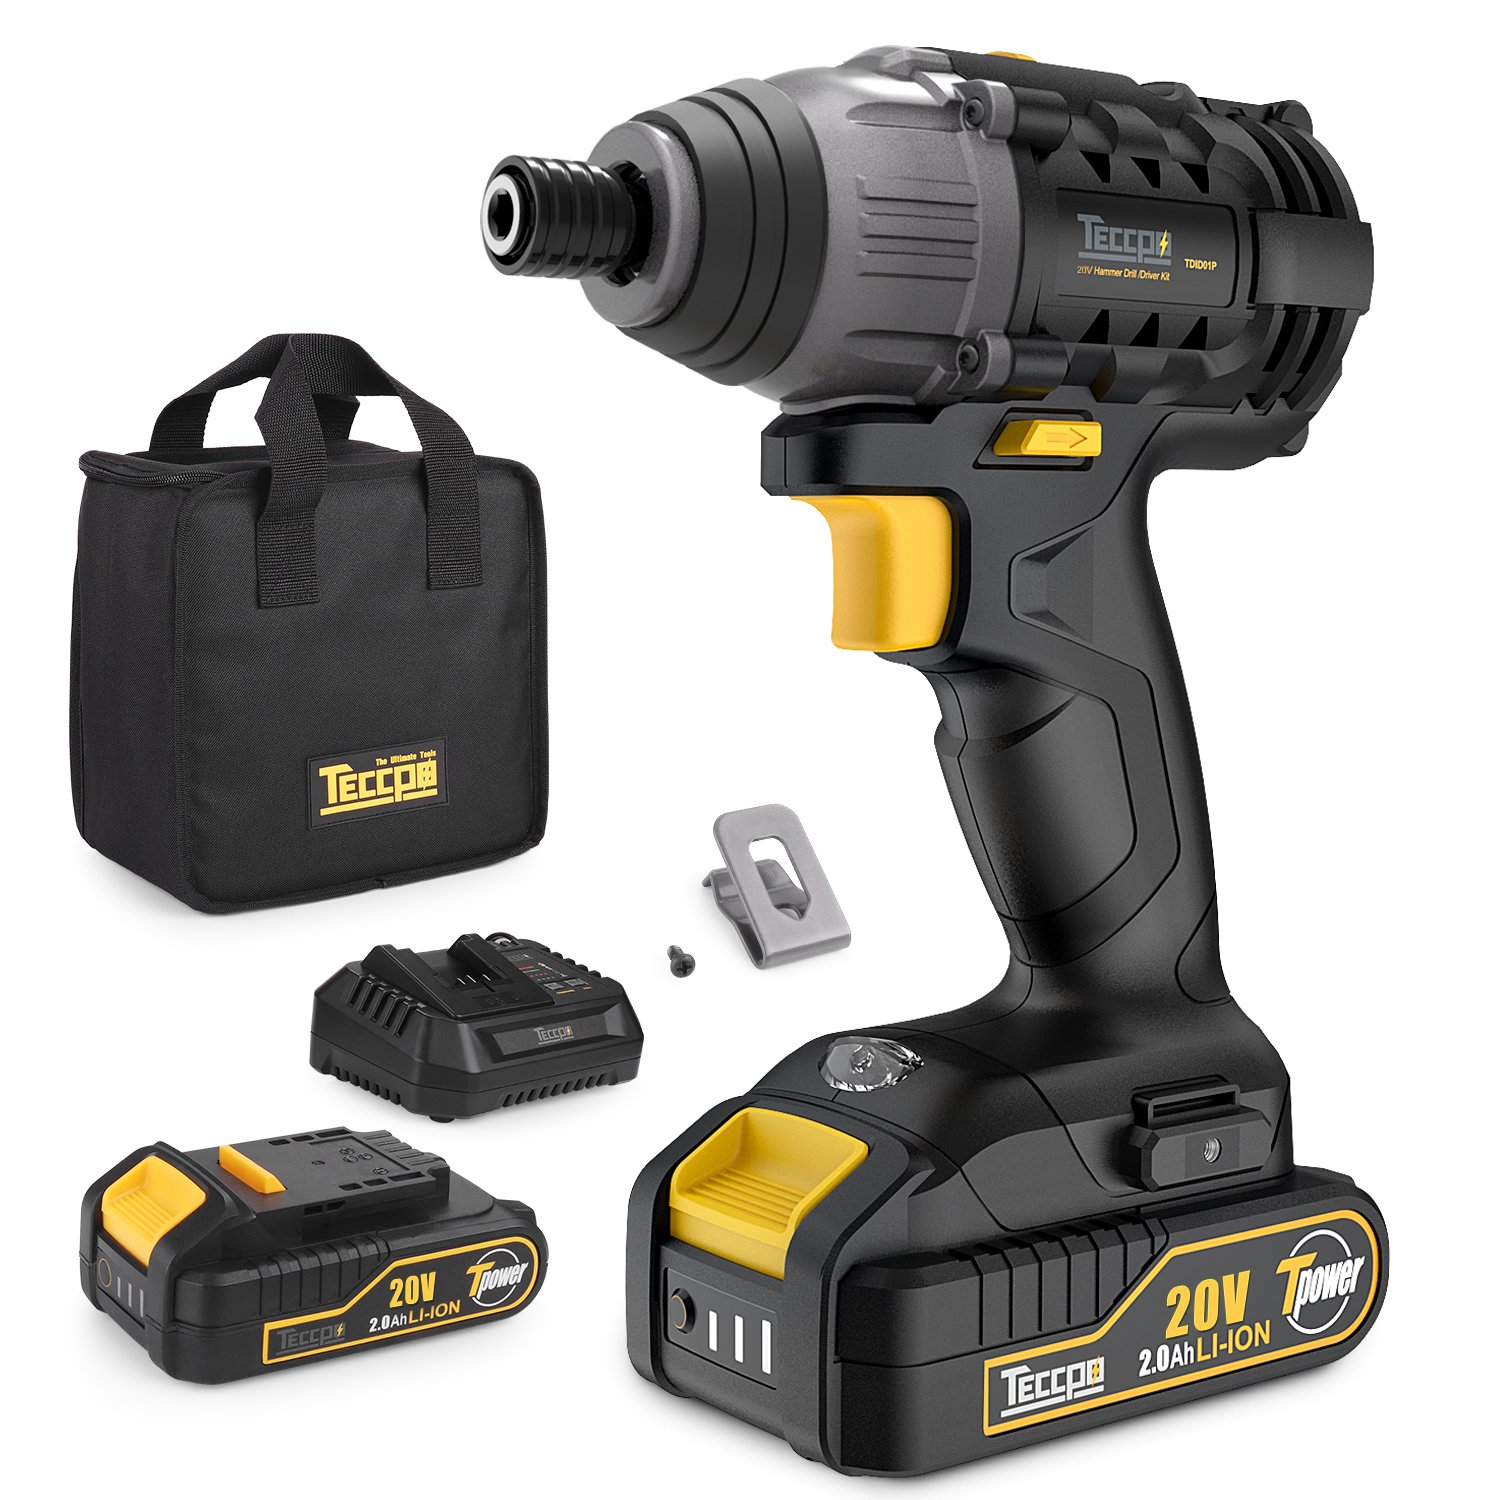 Impact Driver, 2pcs 2.0Ah Lithium Ion Batteries, 1/4'' Hex Chuck 20V Cordless Impact Driver, 30 Minutes Fast Charger, 1600In-lbs Max Torque, 2900RPM Max Speed-TECCPO TDID01P